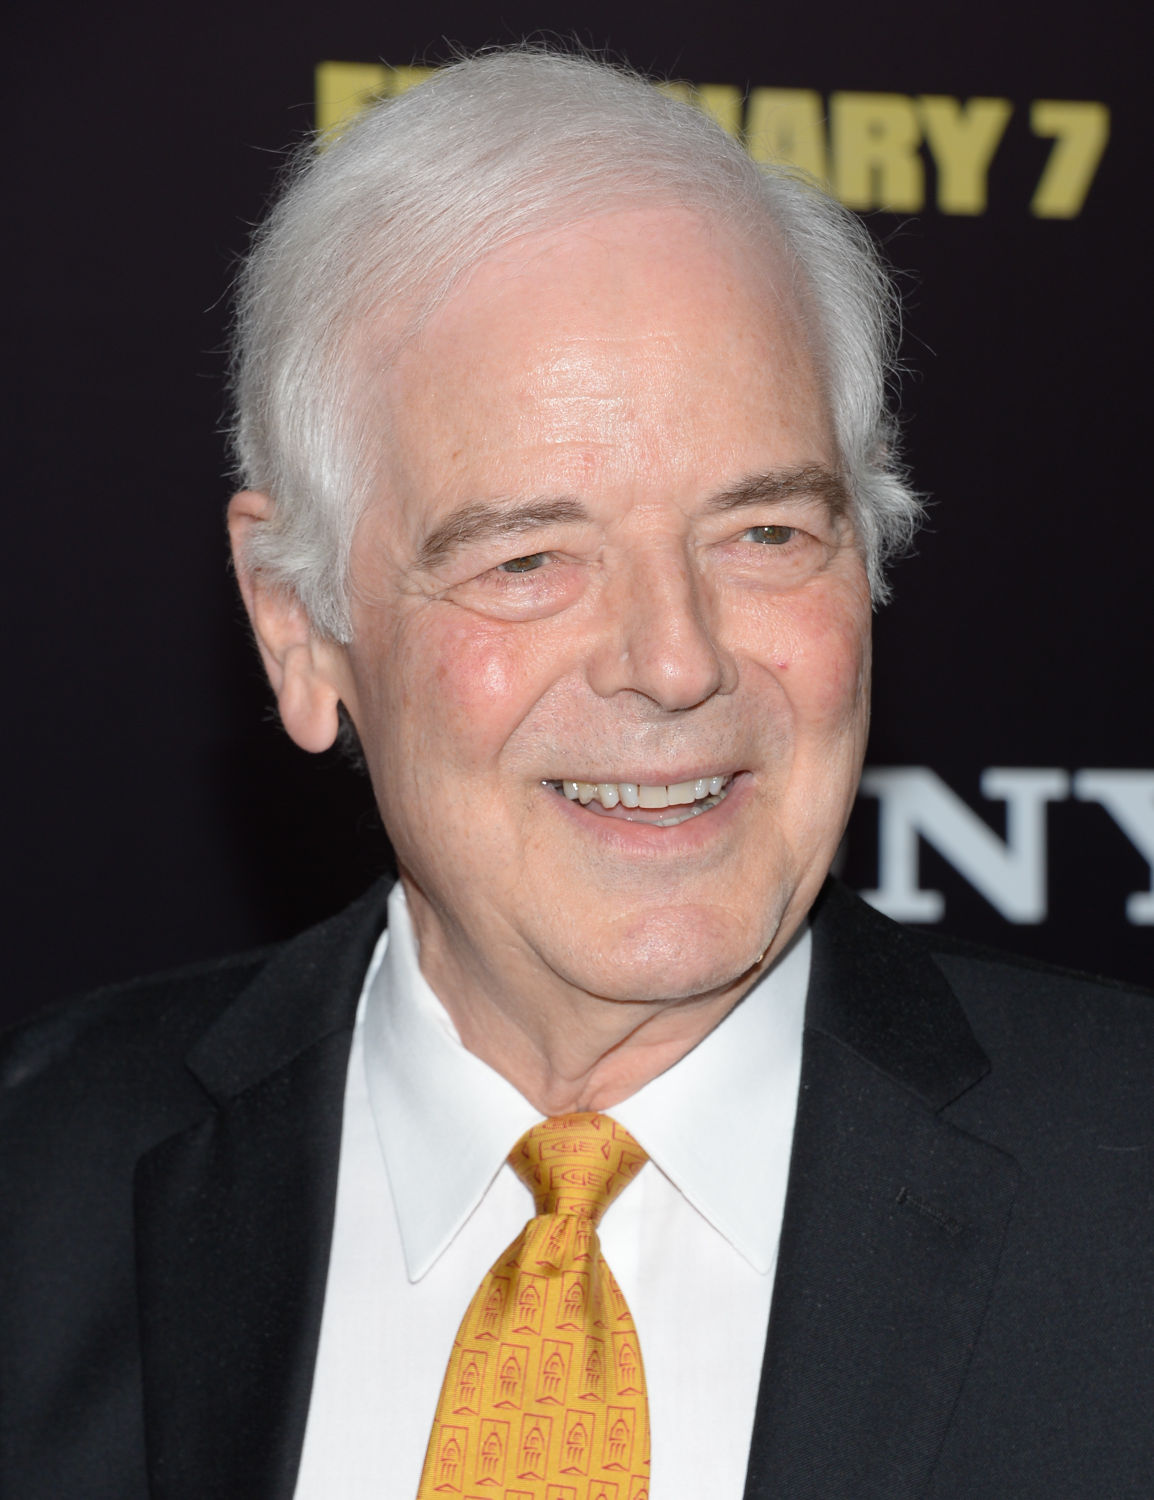 Nick Clooney game show host